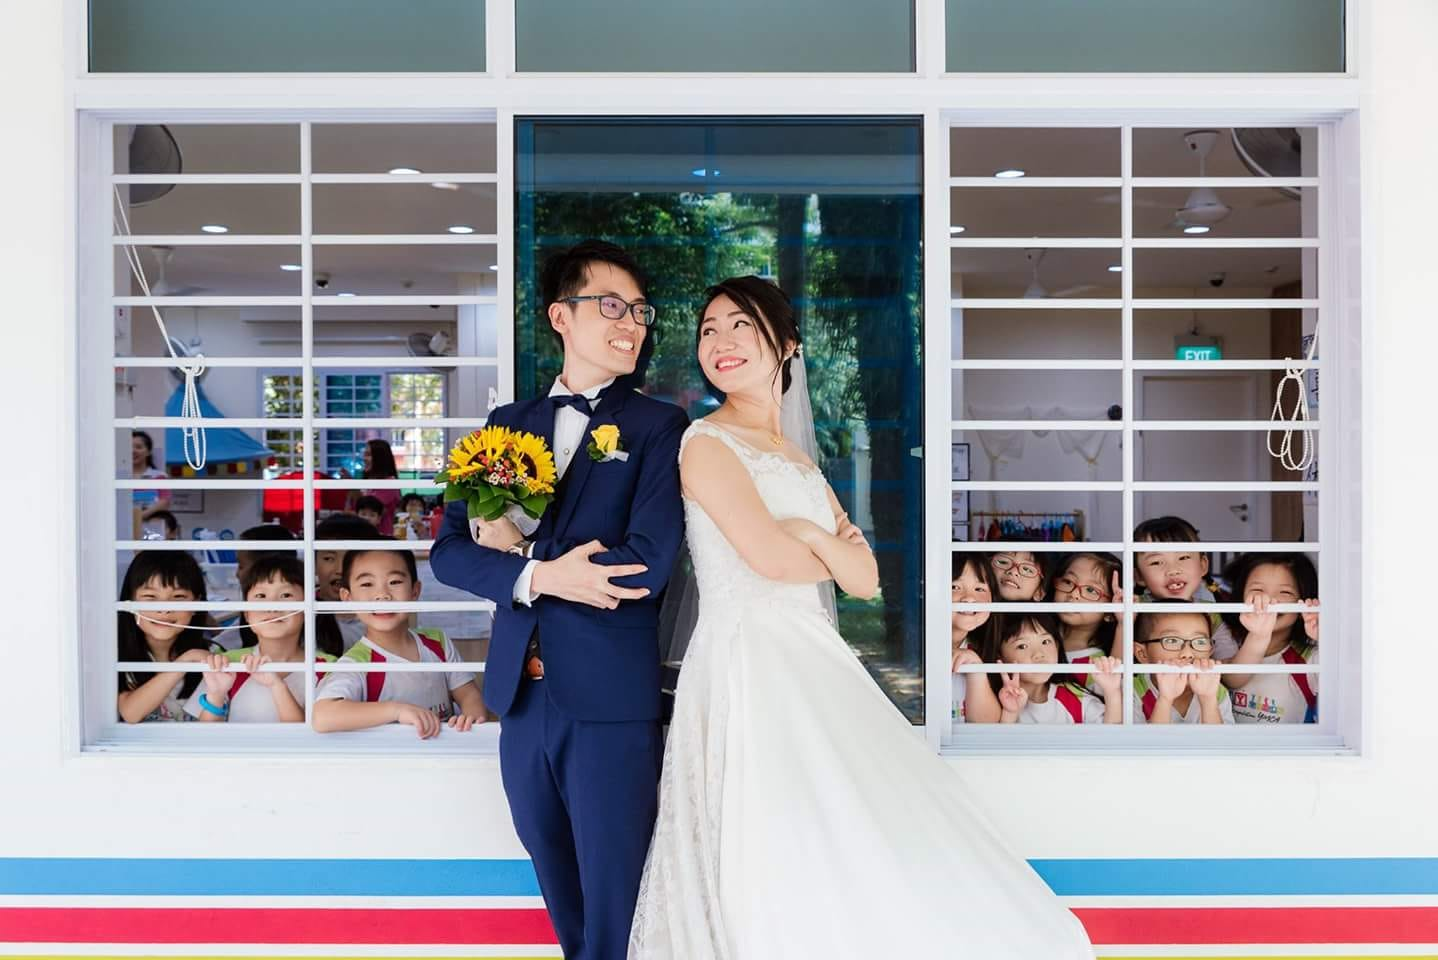 AD Wedding - 8 June 2017